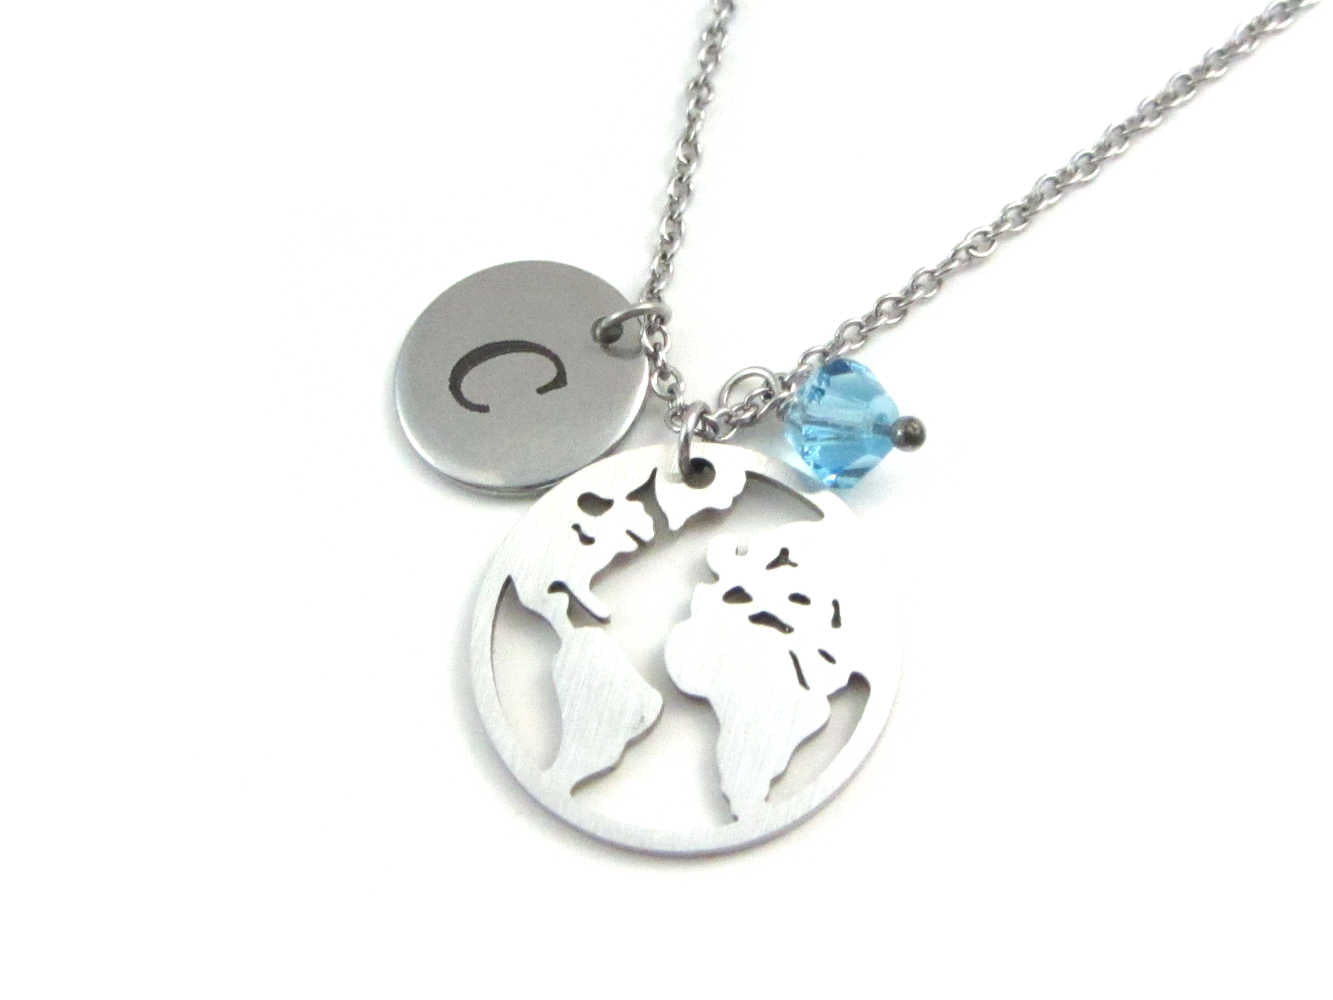 laser engraved capital initial letter disc charm, world globe earth map charm and a light blue crystal charm on a stainless steel chain